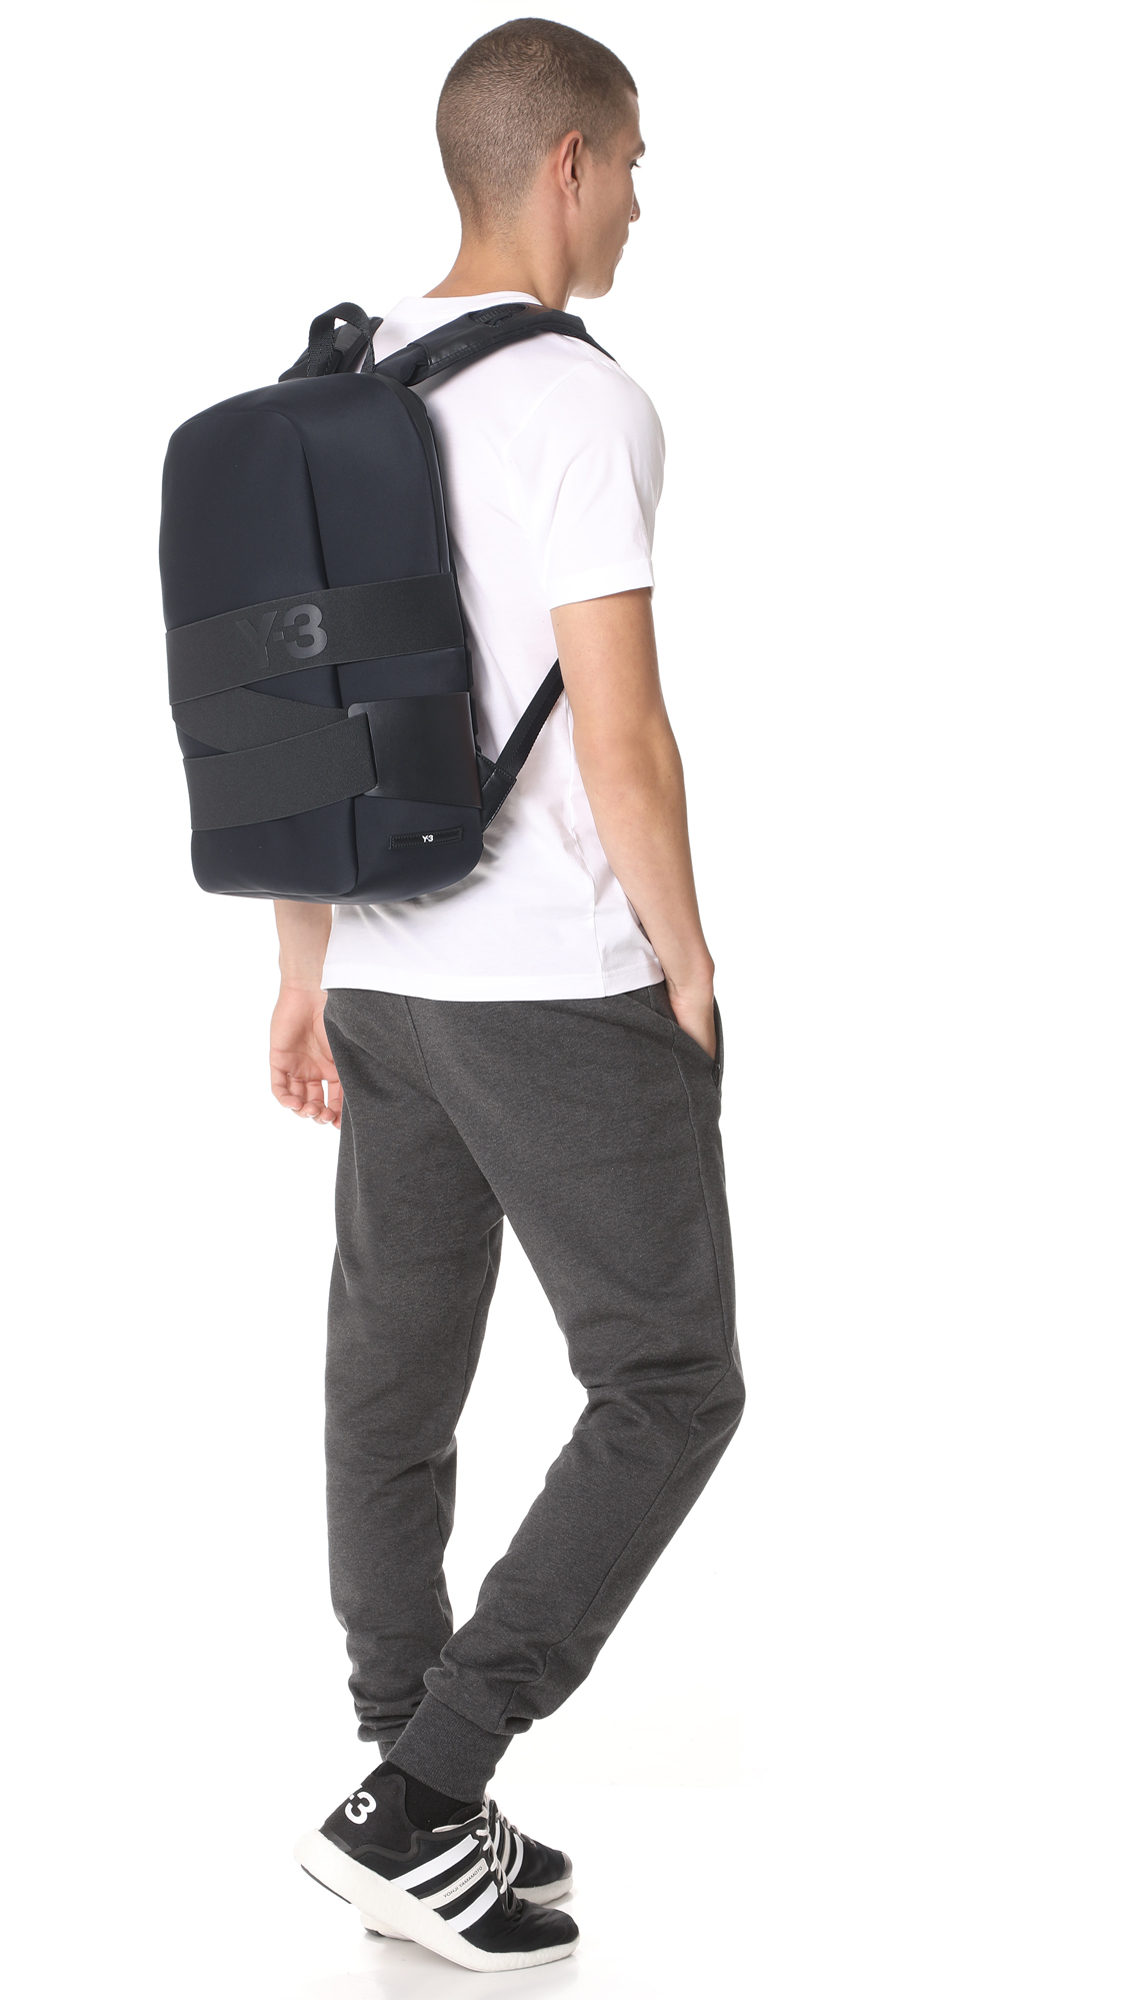 Y-3 Qrush Backpack  ad7f86421ab0c